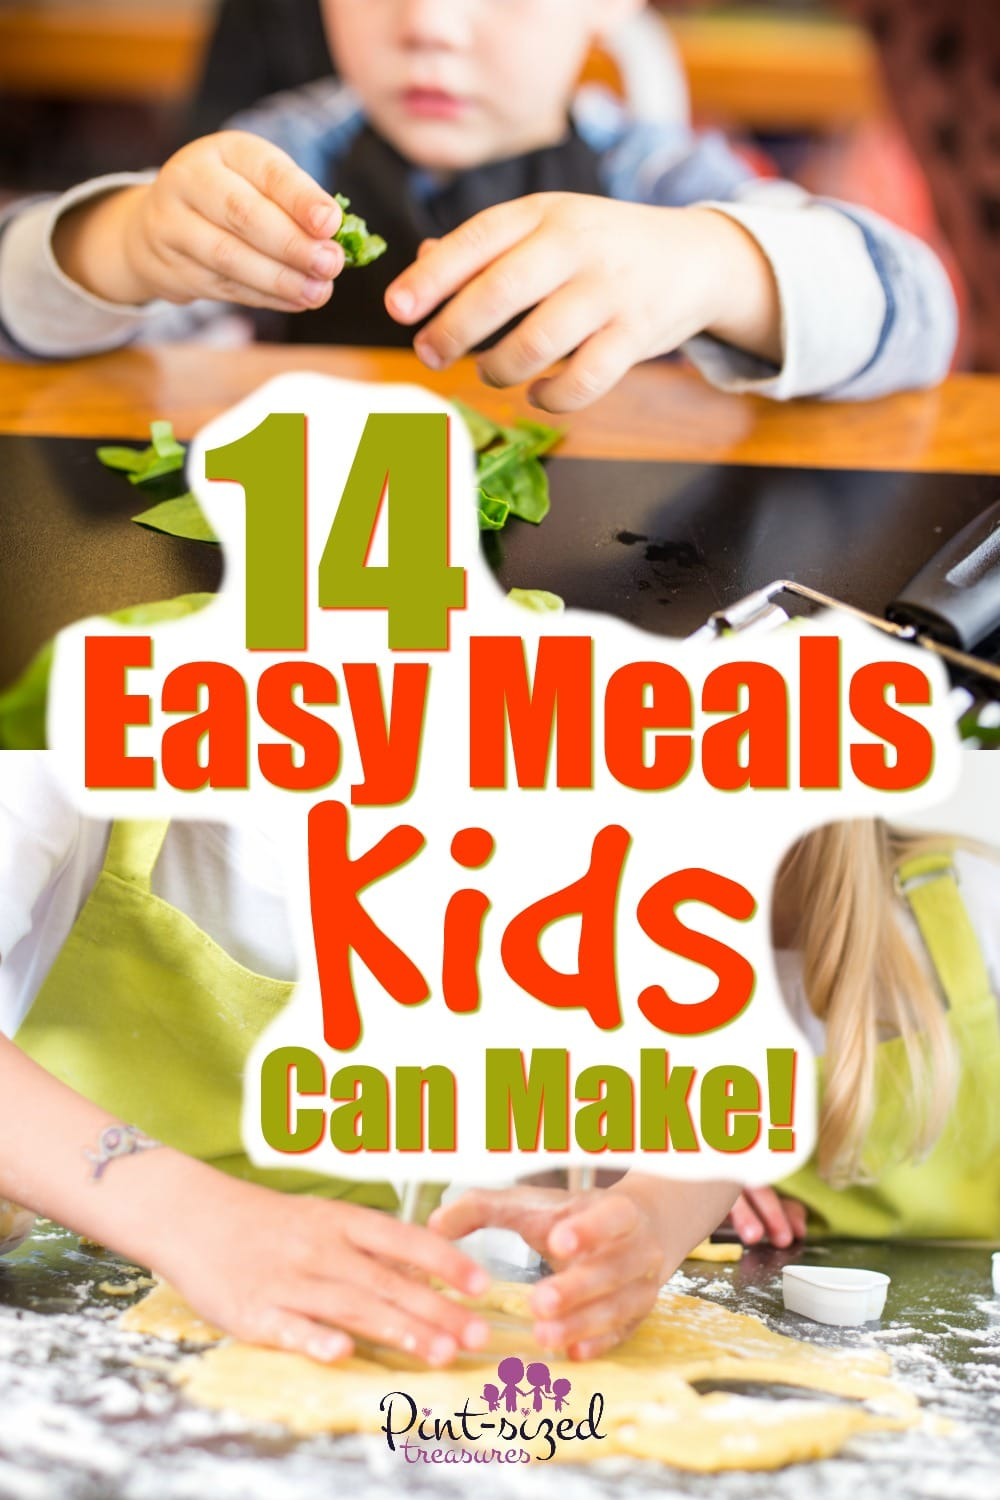 Your kids will love learning these 14 easy meals! These are simple, fun meals that kids can make!